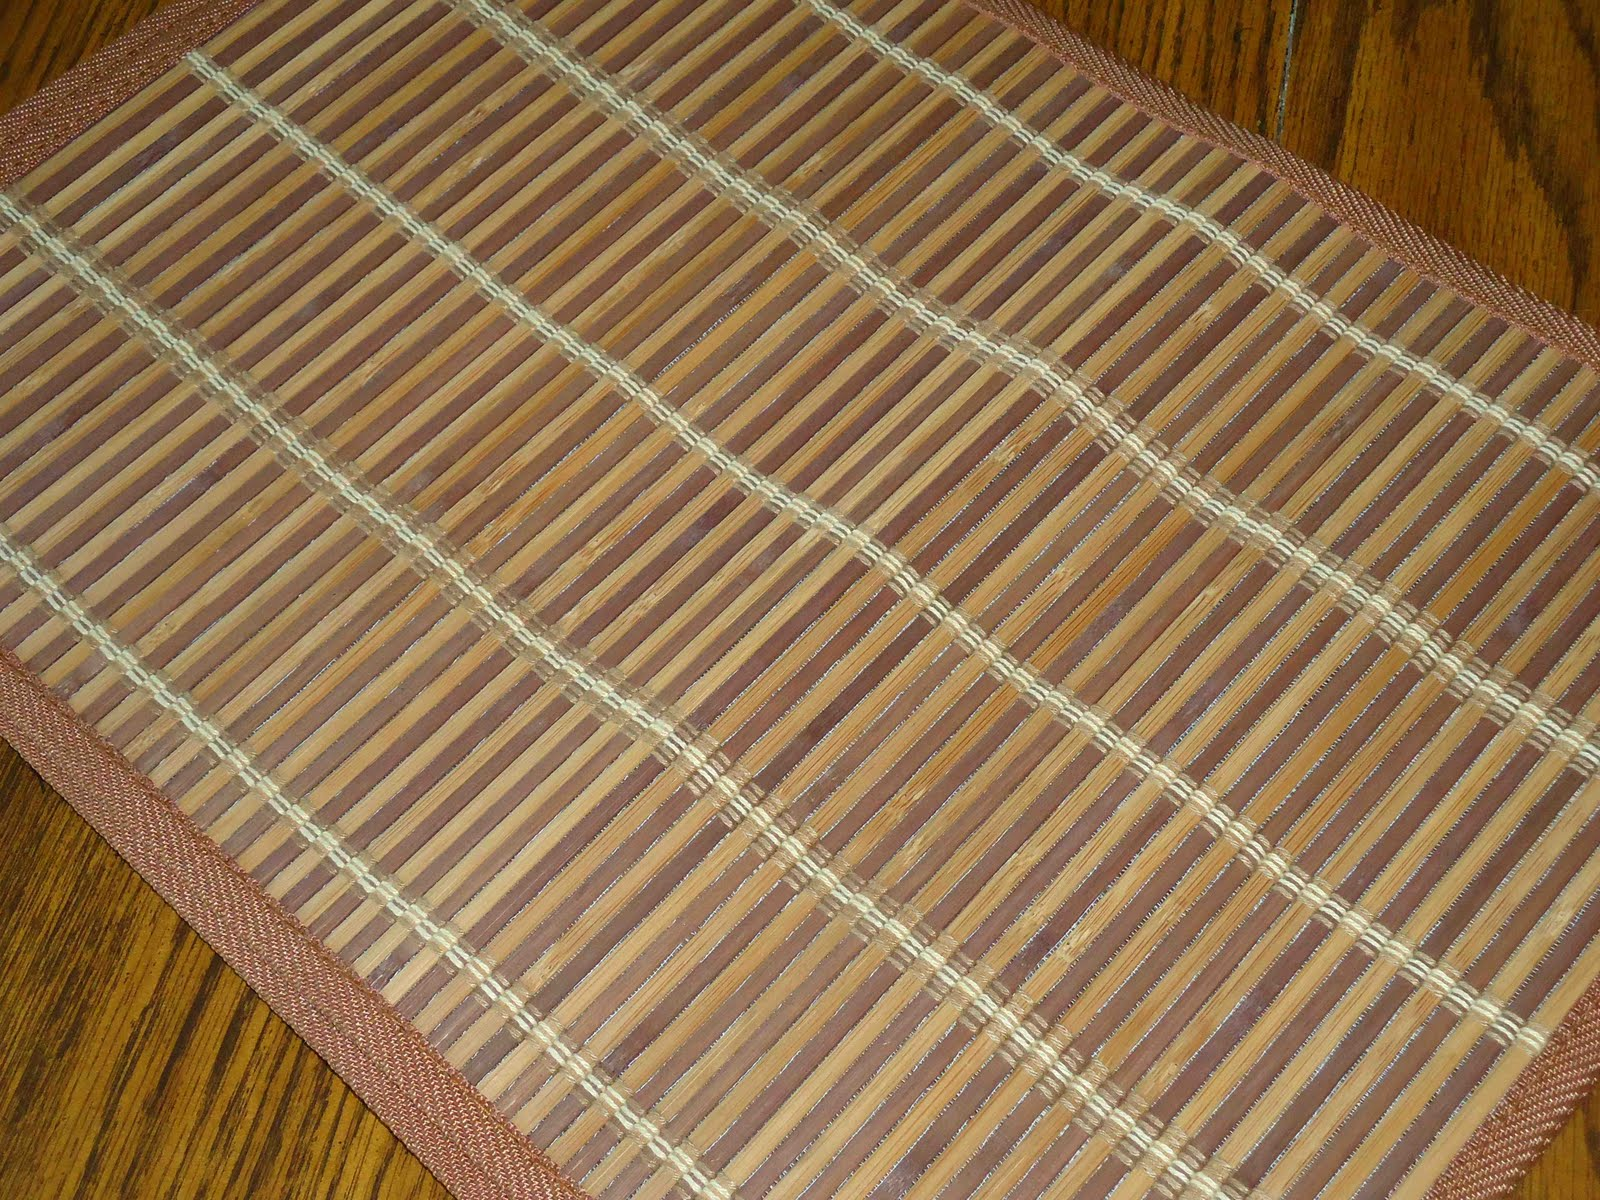 bamboo door mat  roll up bamboo bath shower bathtub spa sauna mat  - domesticated nomad door mat cheap and easy